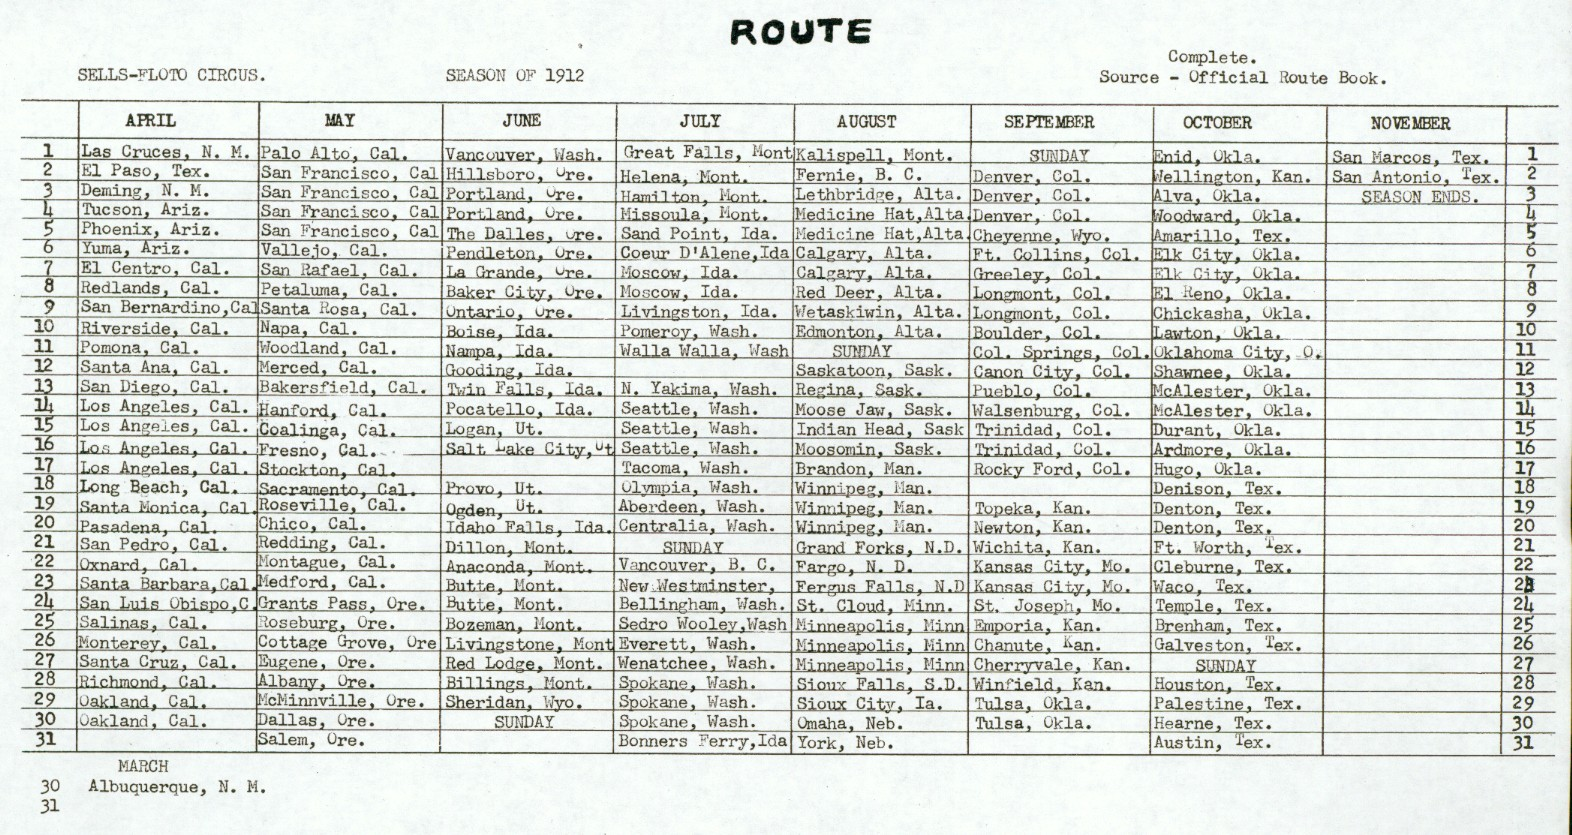 1912 Season Route, Sells-Floto Circus